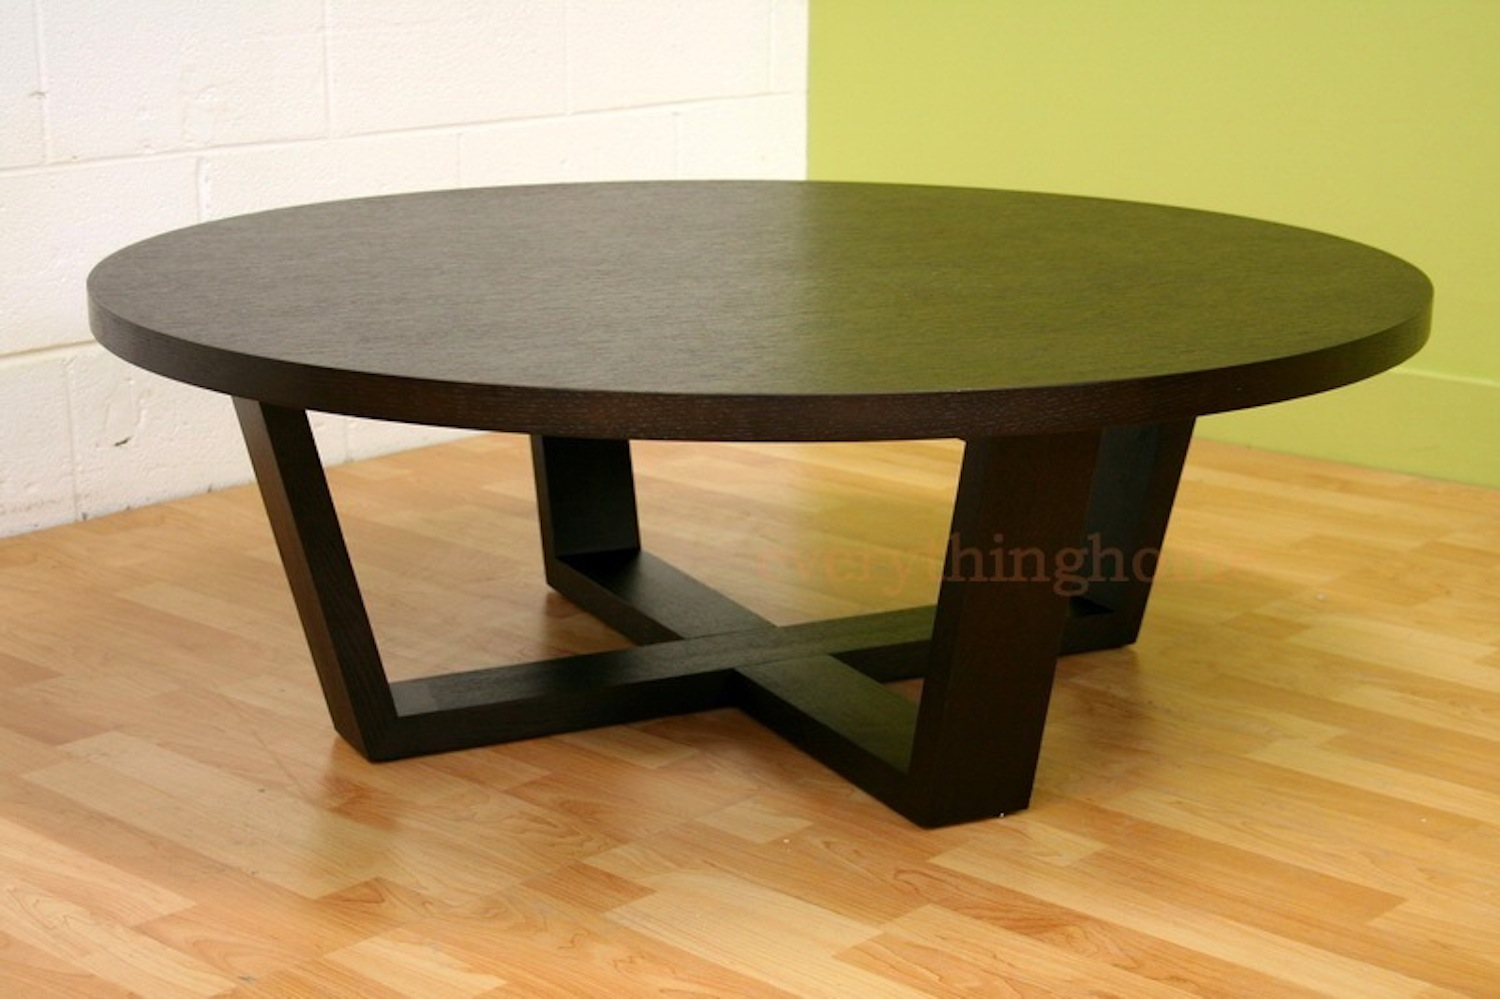 Http Www Ebay Com Itm Modern Black Stained Oak Wood Coffee Table X Wood Legs Round Designer Style 231002205094